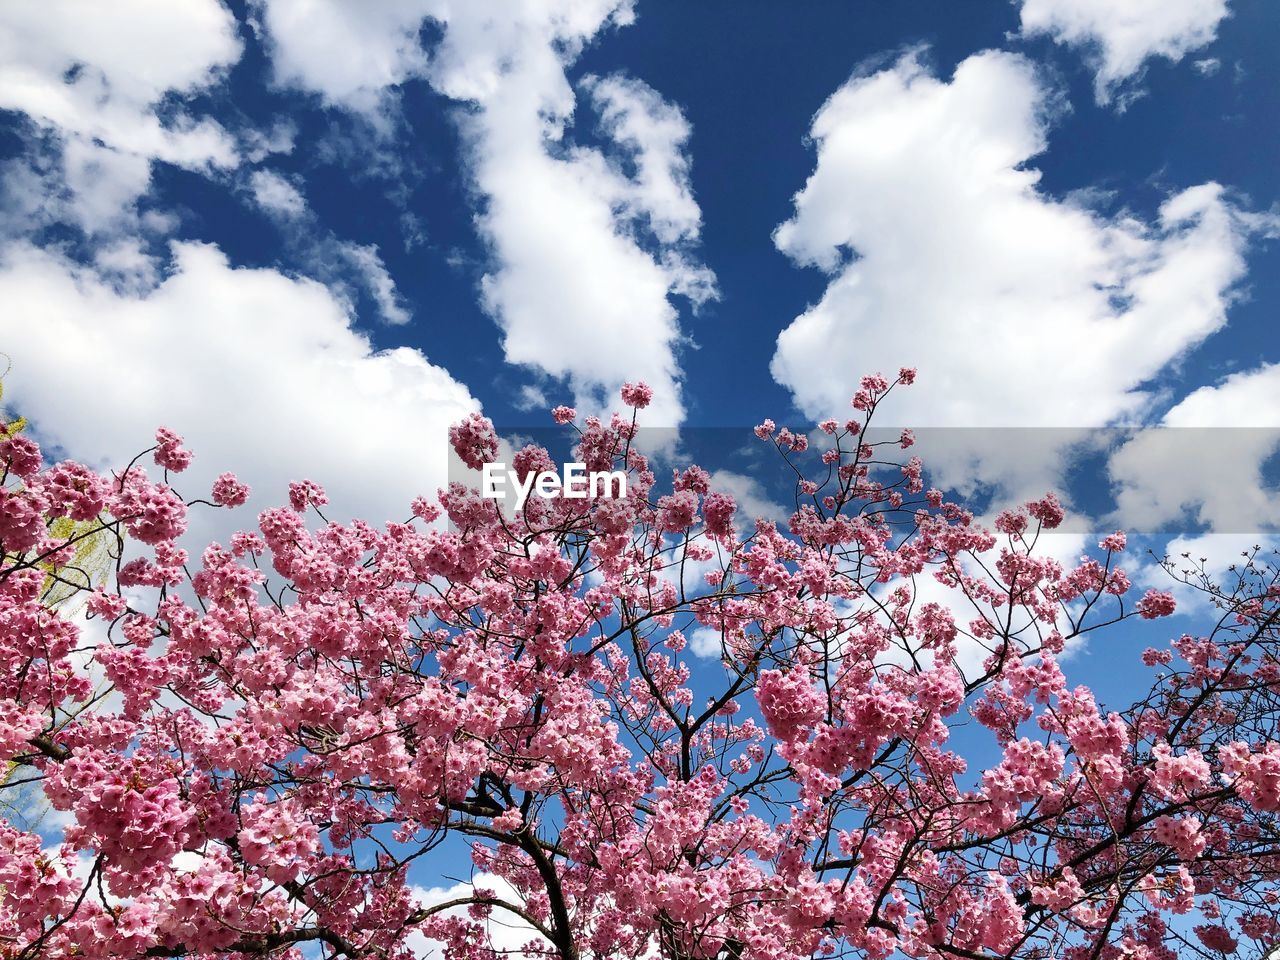 flower, tree, beauty in nature, low angle view, blossom, nature, growth, sky, springtime, fragility, pink color, branch, cloud - sky, day, no people, freshness, outdoors, tranquility, scenics, close-up